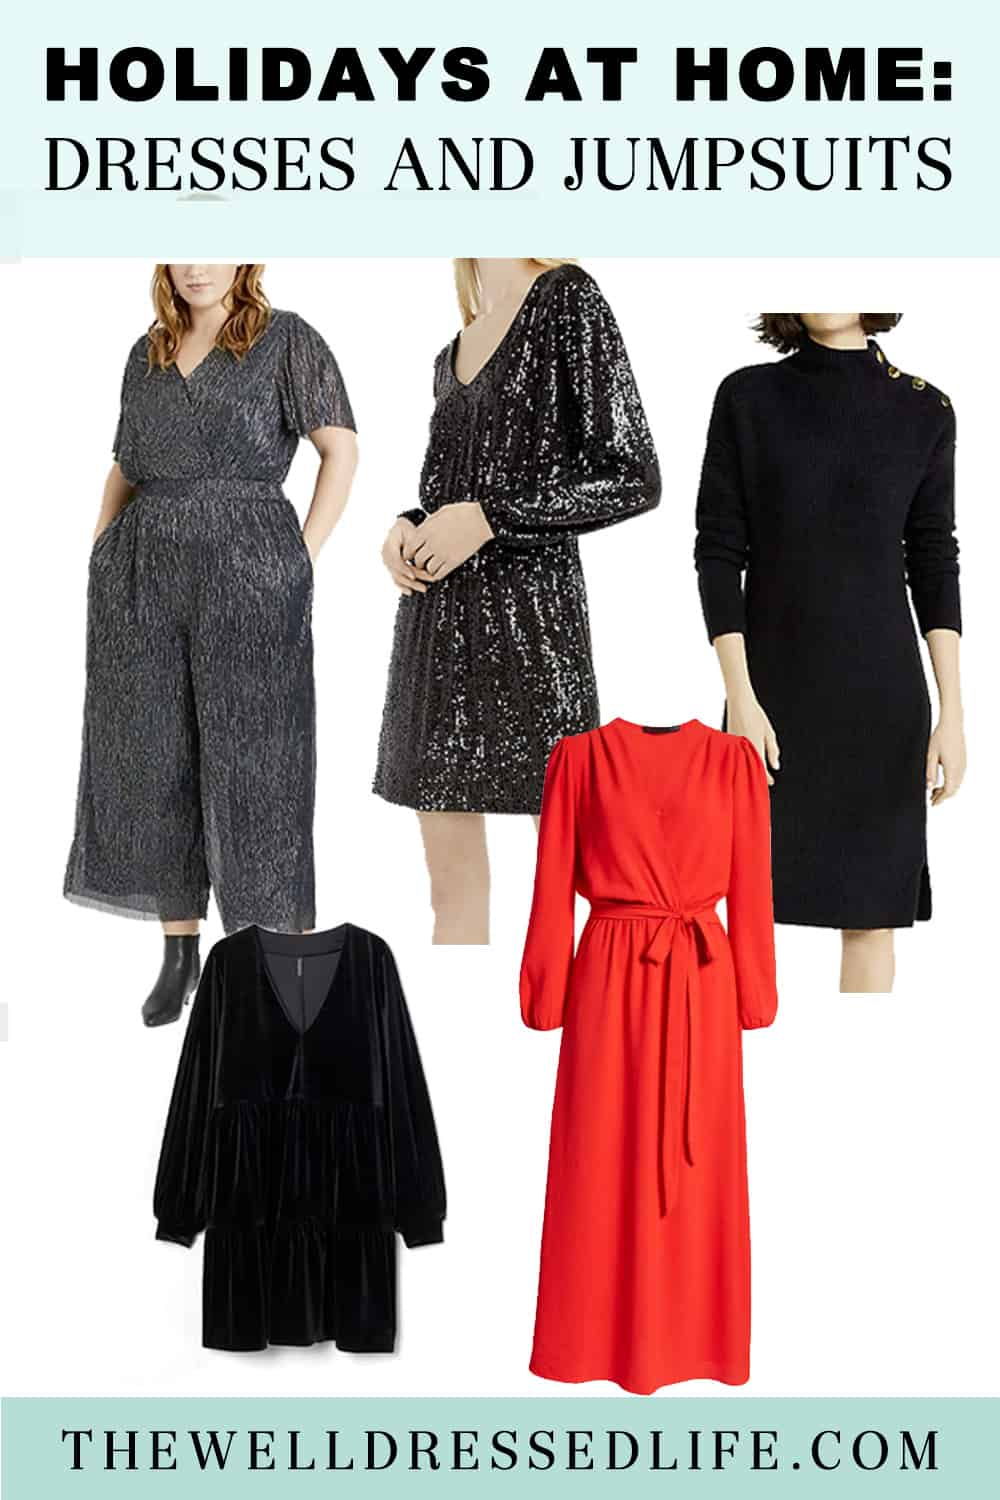 Holidays at Home: Dresses and Jumpsuits